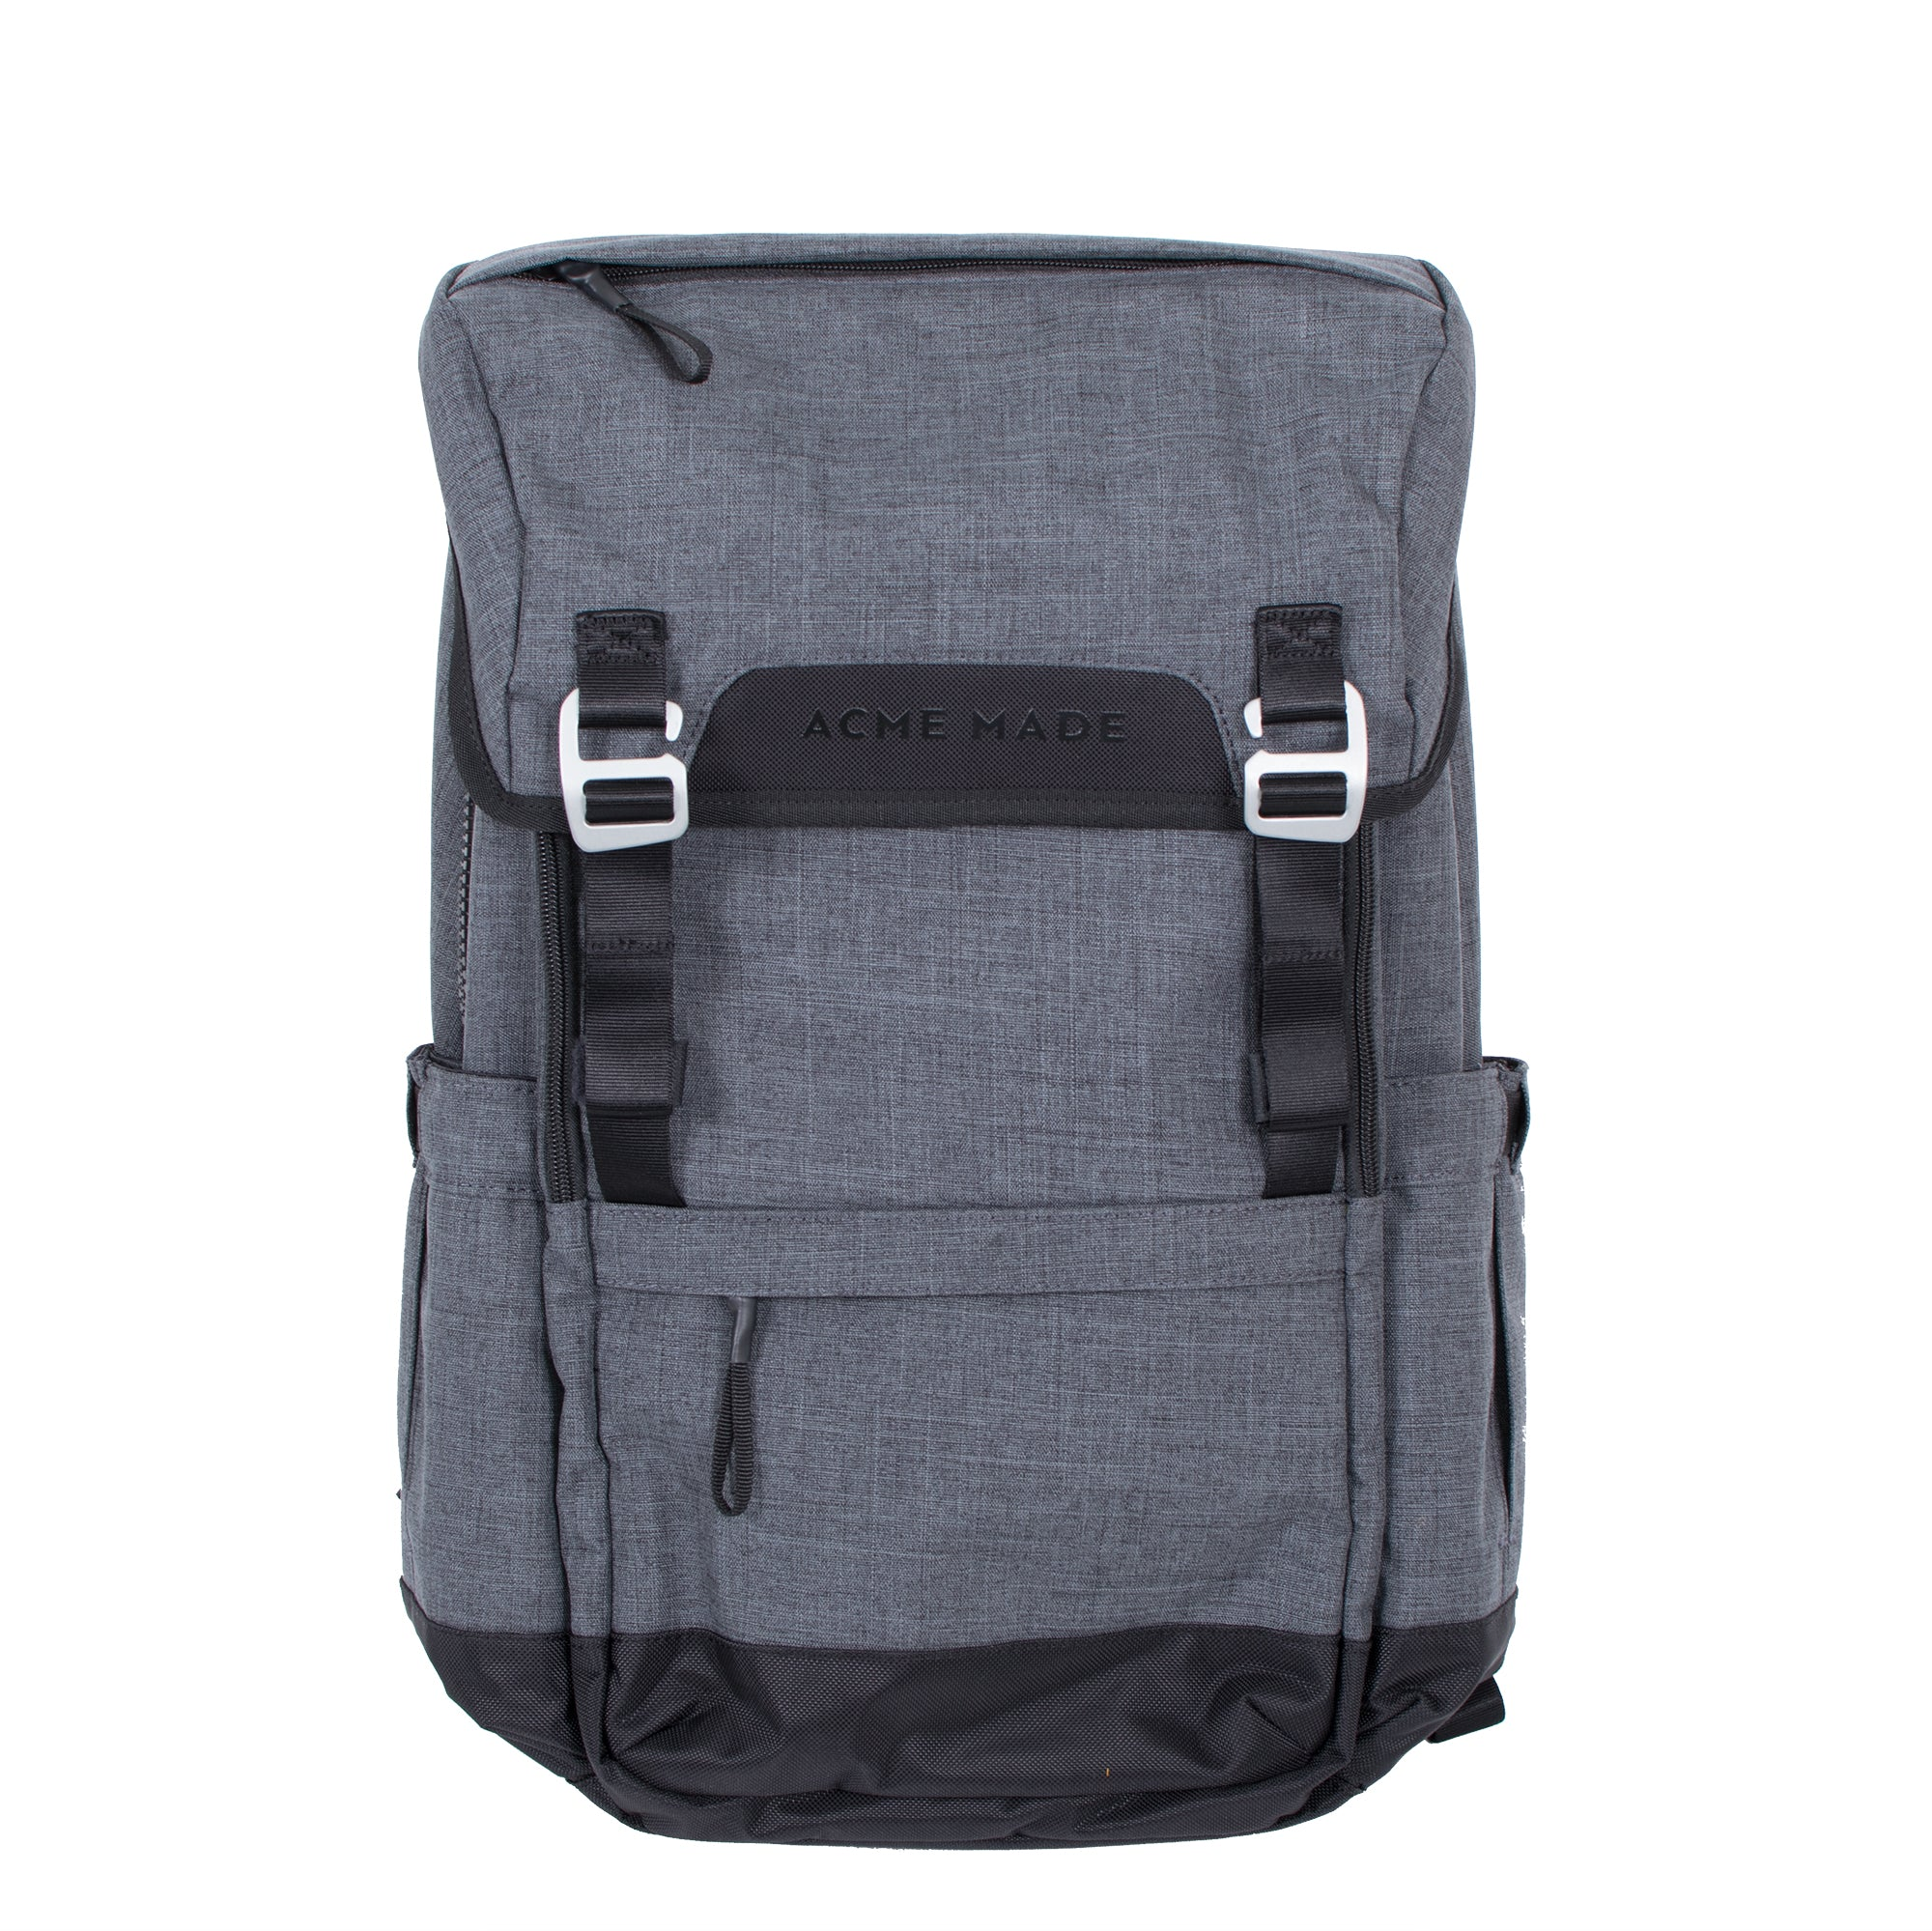 The Acme Made Divisadero Traveler Backpack travel product recommended by Daneen Kiger on Lifney.